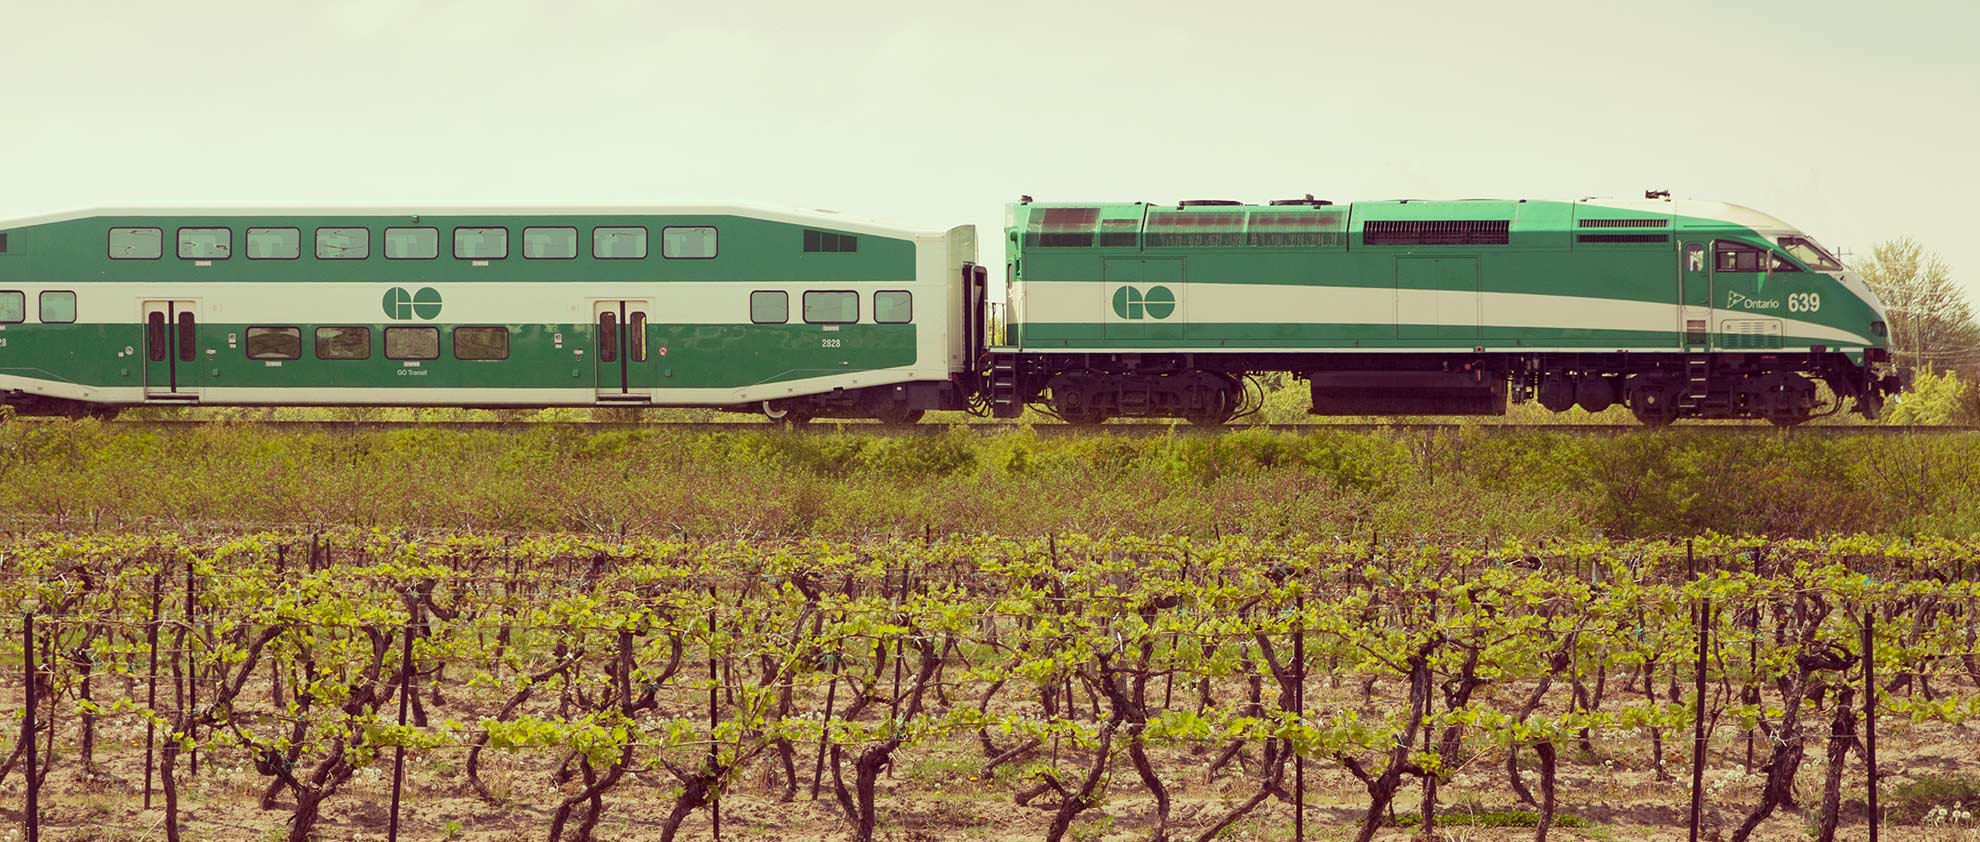 Go Train travelling through vineyards